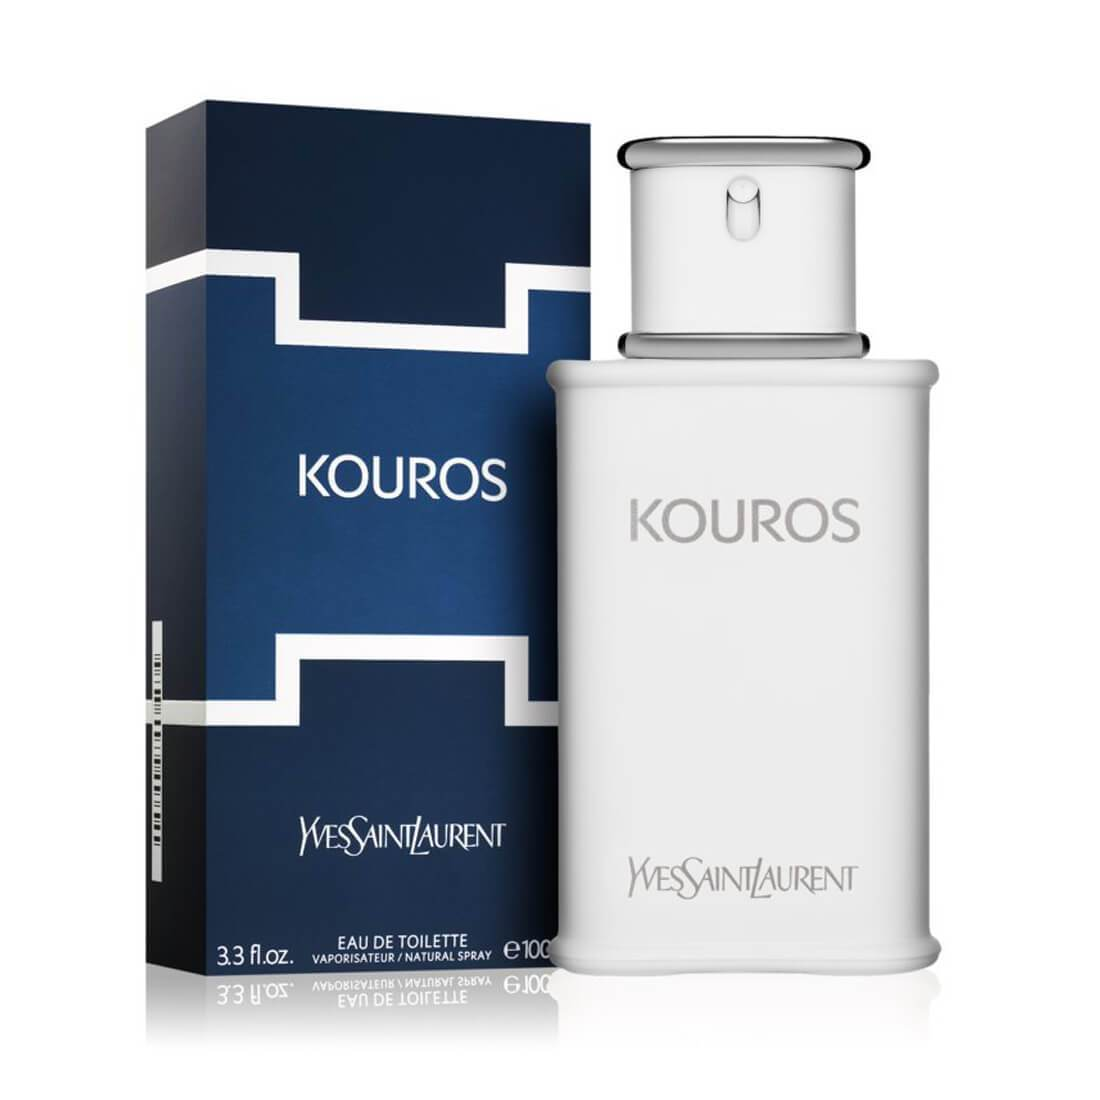 Yves Saint Laurent Kouros EDT Perfume For Men - 100ml